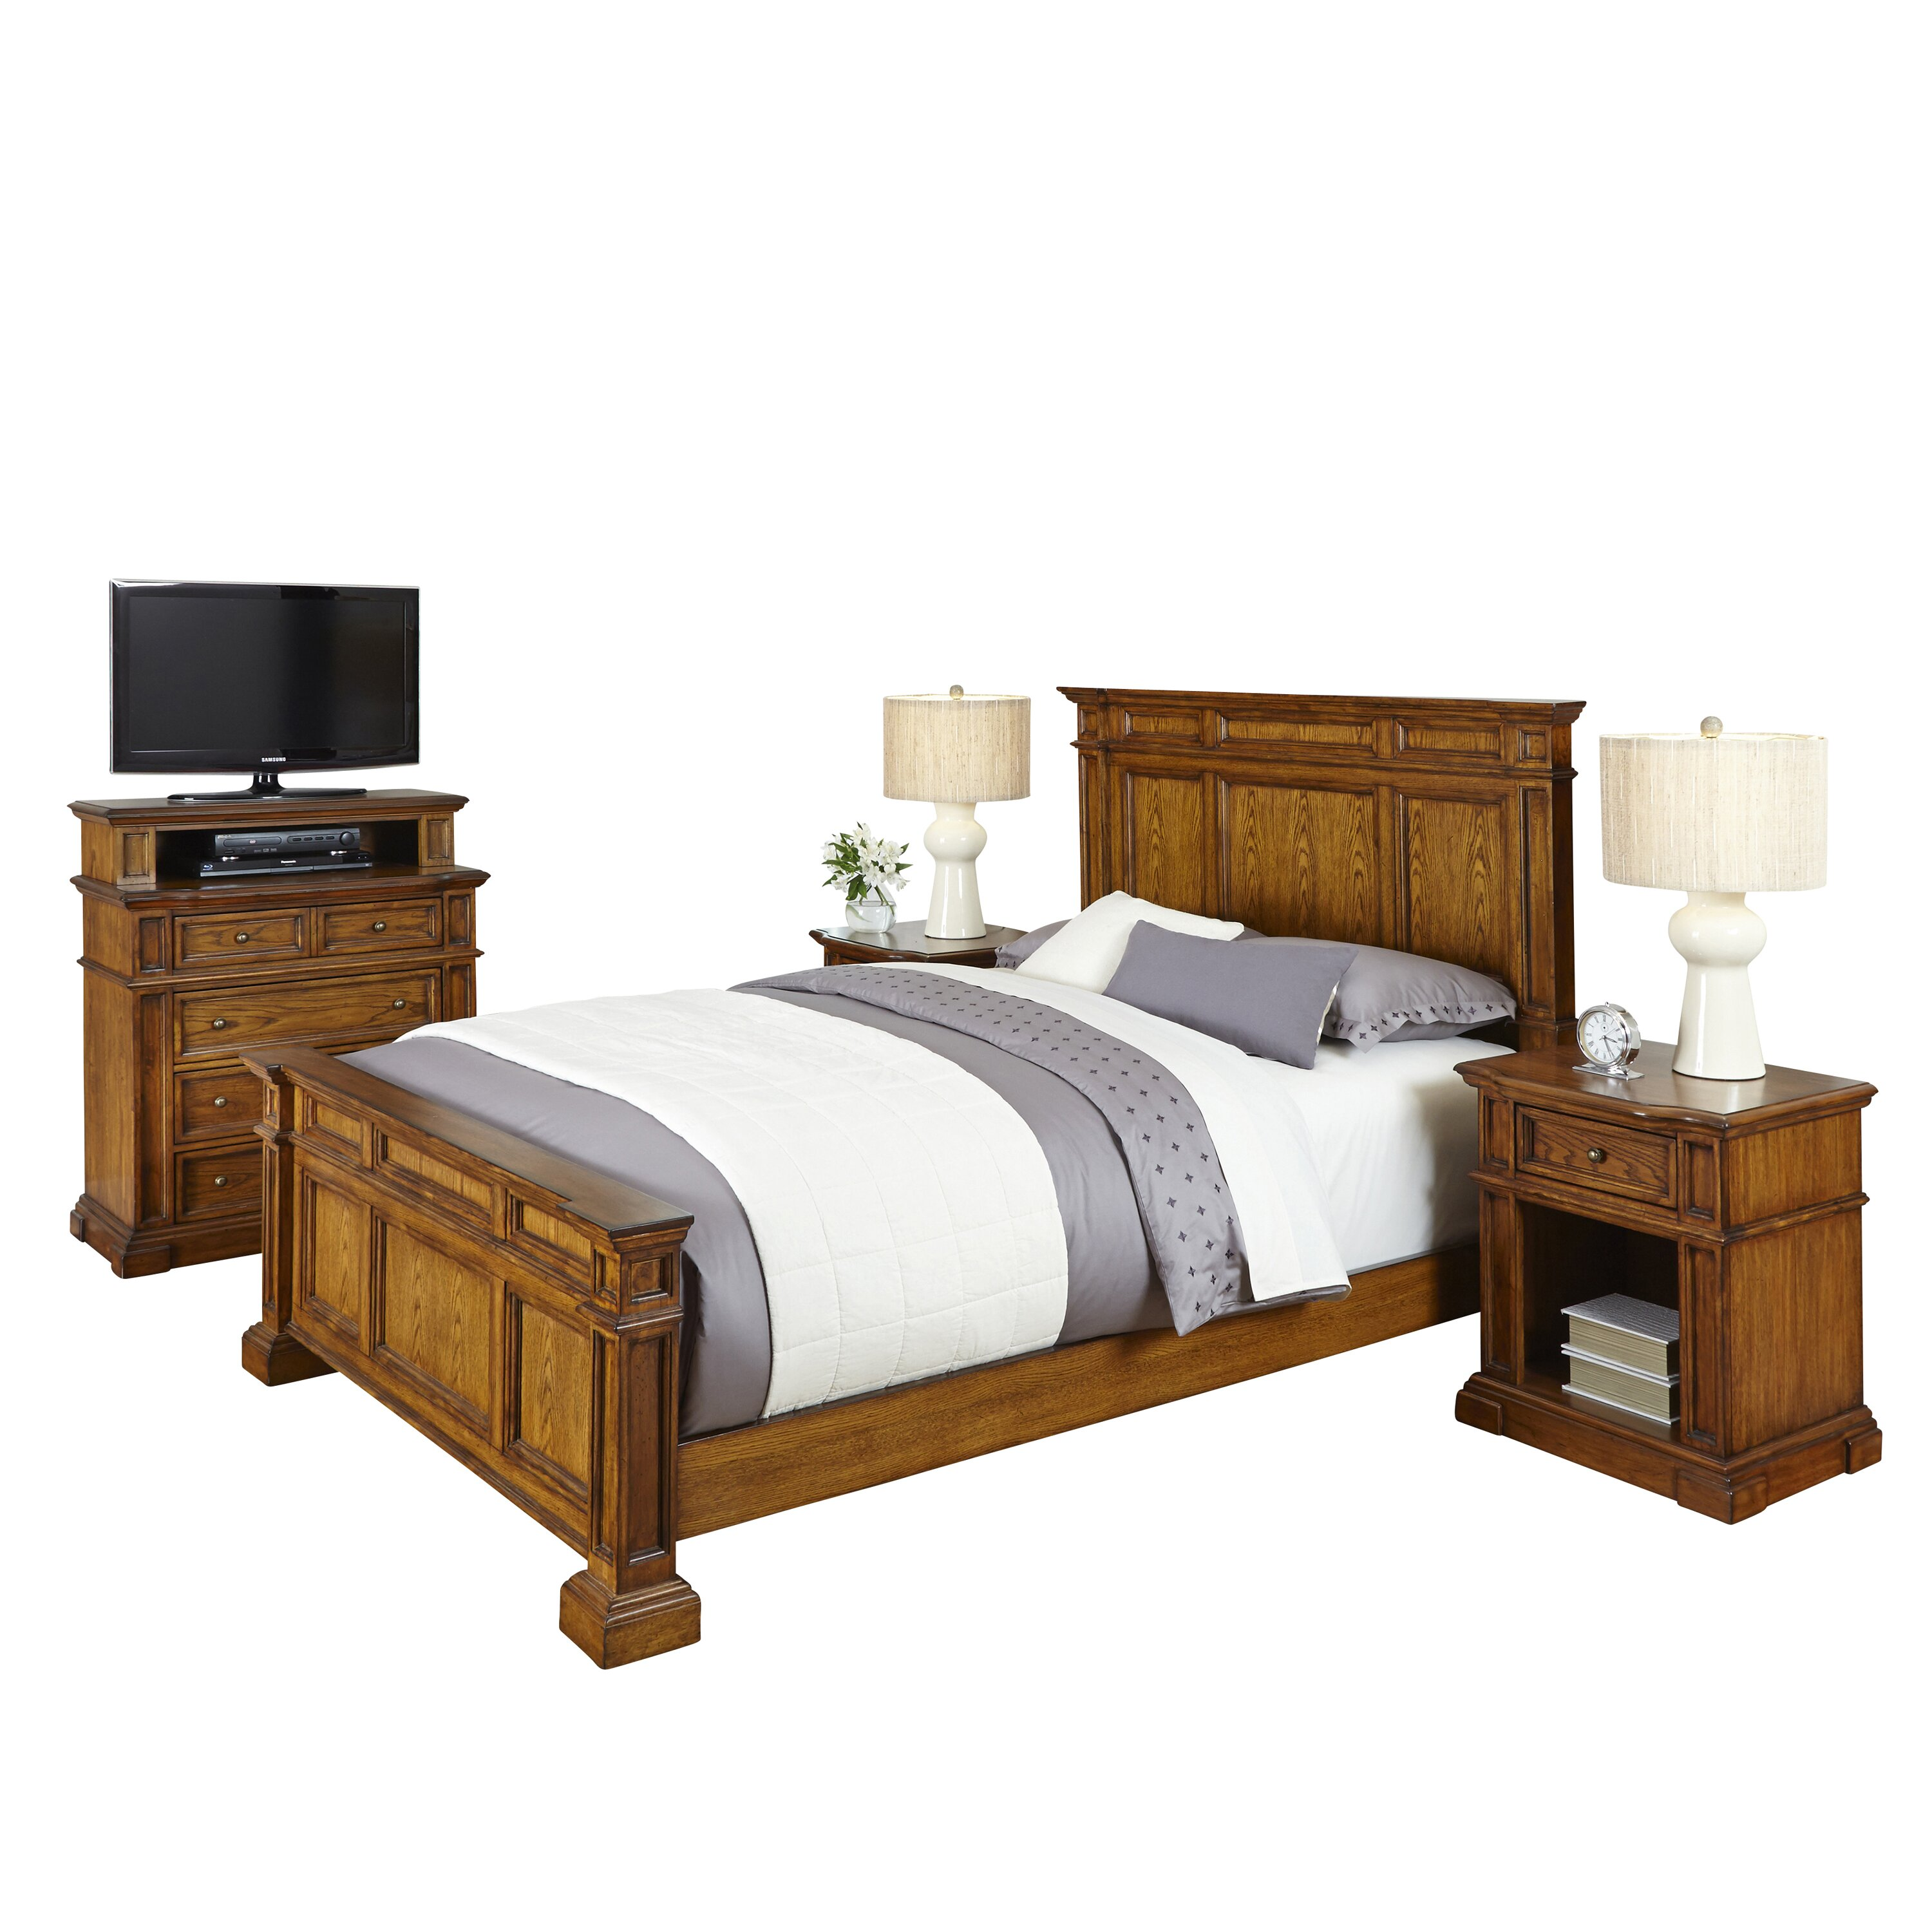 Bedroom Set Amp Reviews House Of Hampton Whitworth Platform Hampton